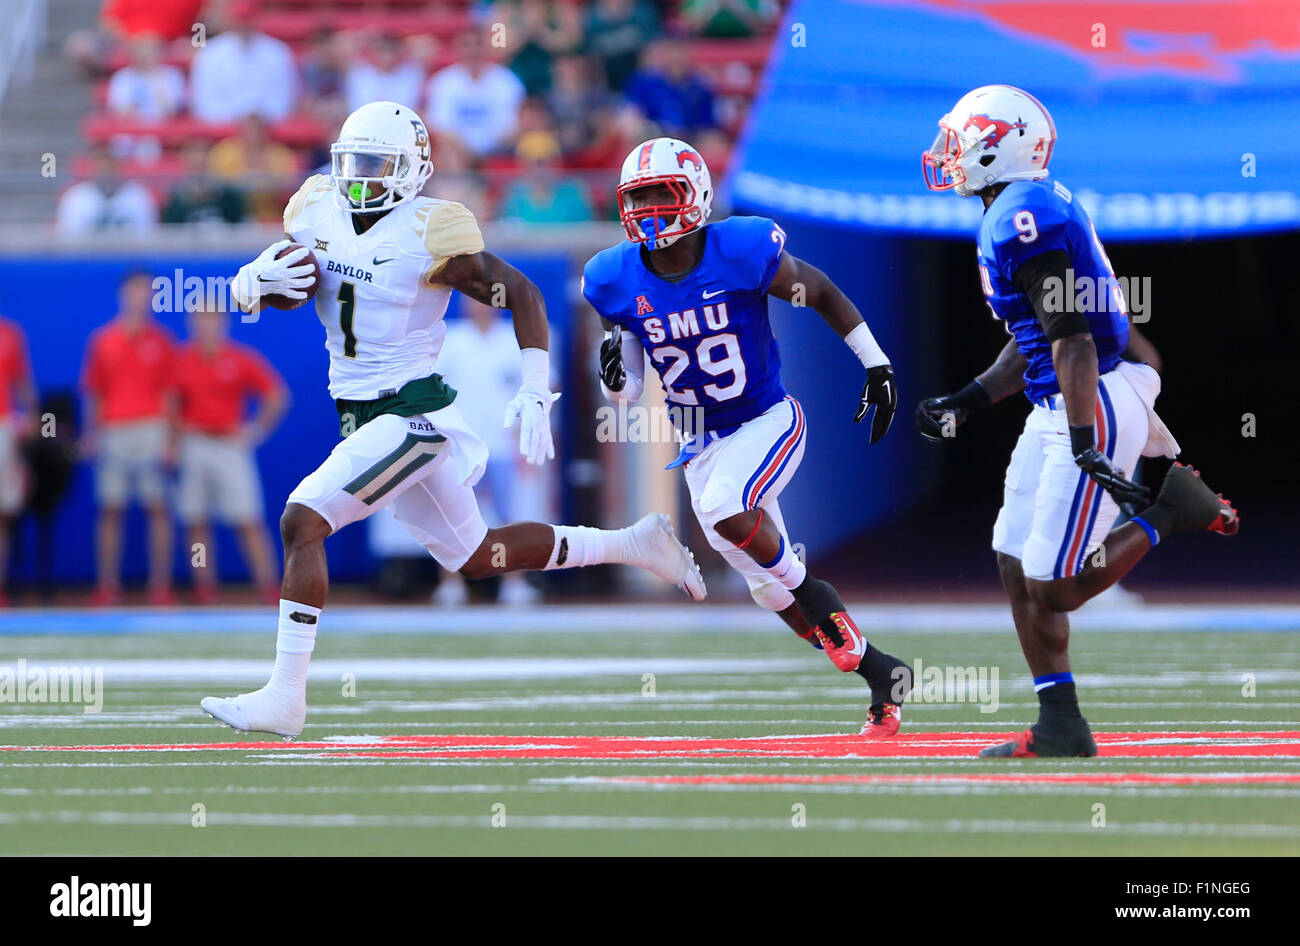 Dallas, TX, USA. 4th Sep, 2015. wide receiver Corey Coleman (1) of the Baylor Bears continues to gain yards after Stock Photo